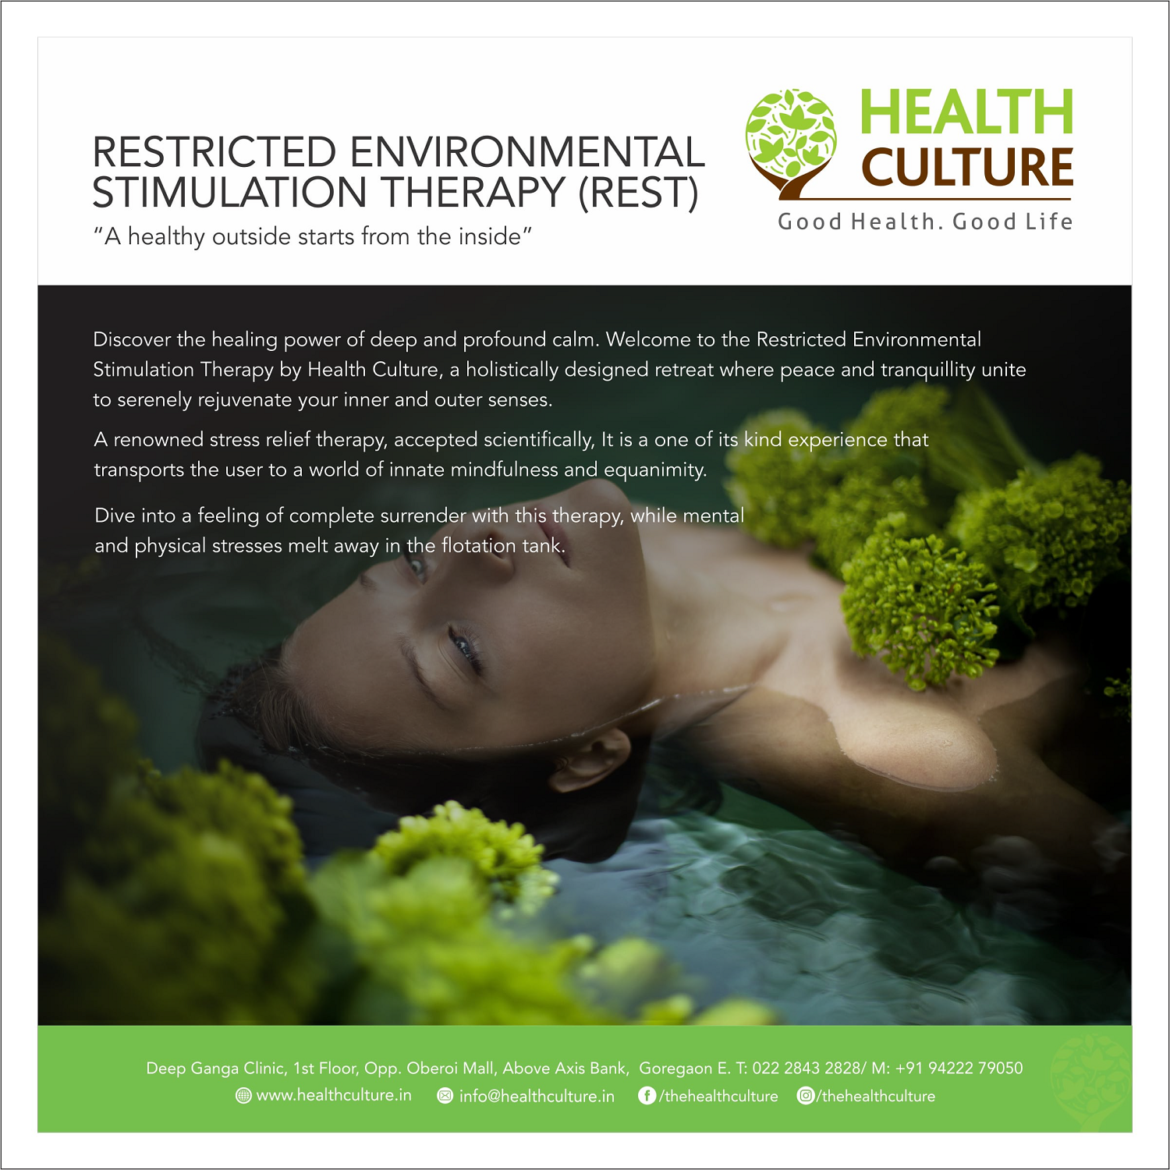 Restricted Environmental Stimulation Therapy (REST) - Health Culture